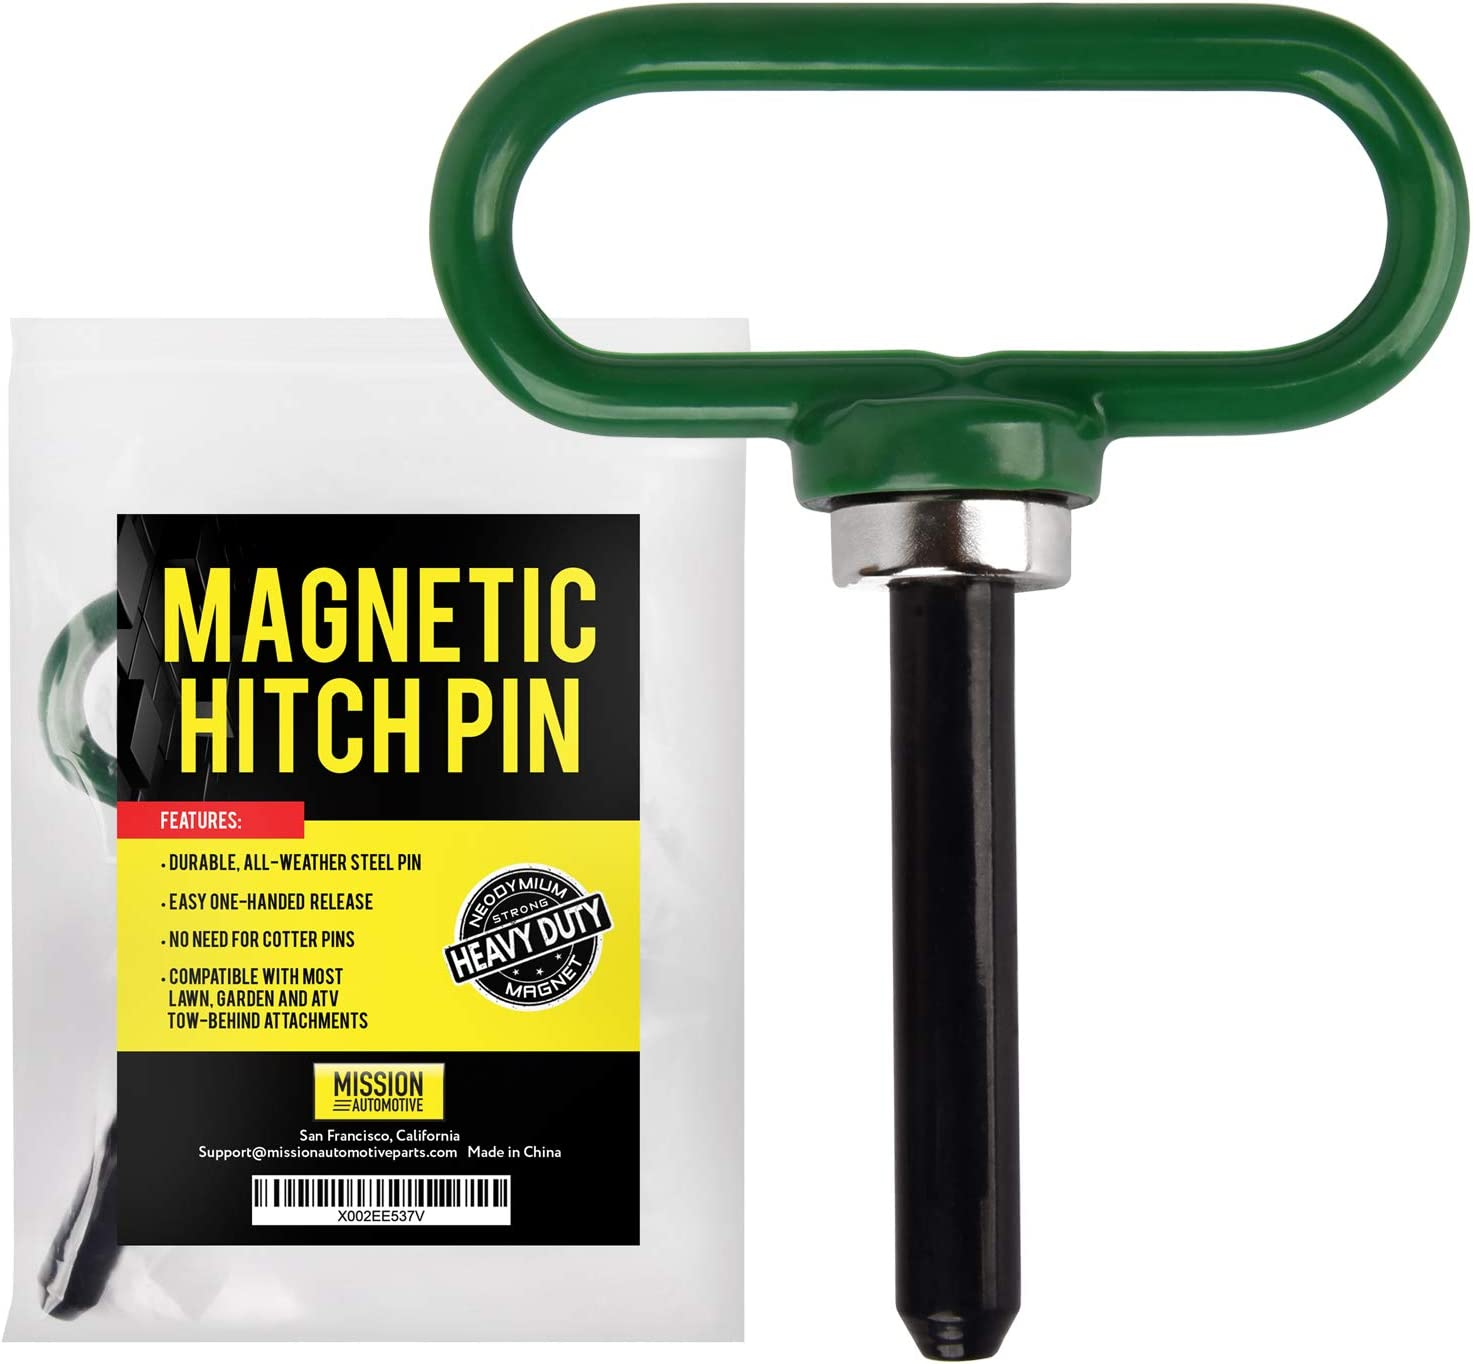 Magnetic Hitch Pin - Lawn Mower Trailer Hitch Pins - Ultra Strong Neodymium Magnet Trailer Gate Pin for Simple One Handed Hook On & Off - Securely Hitch Lawn & Tow Behind Attachments